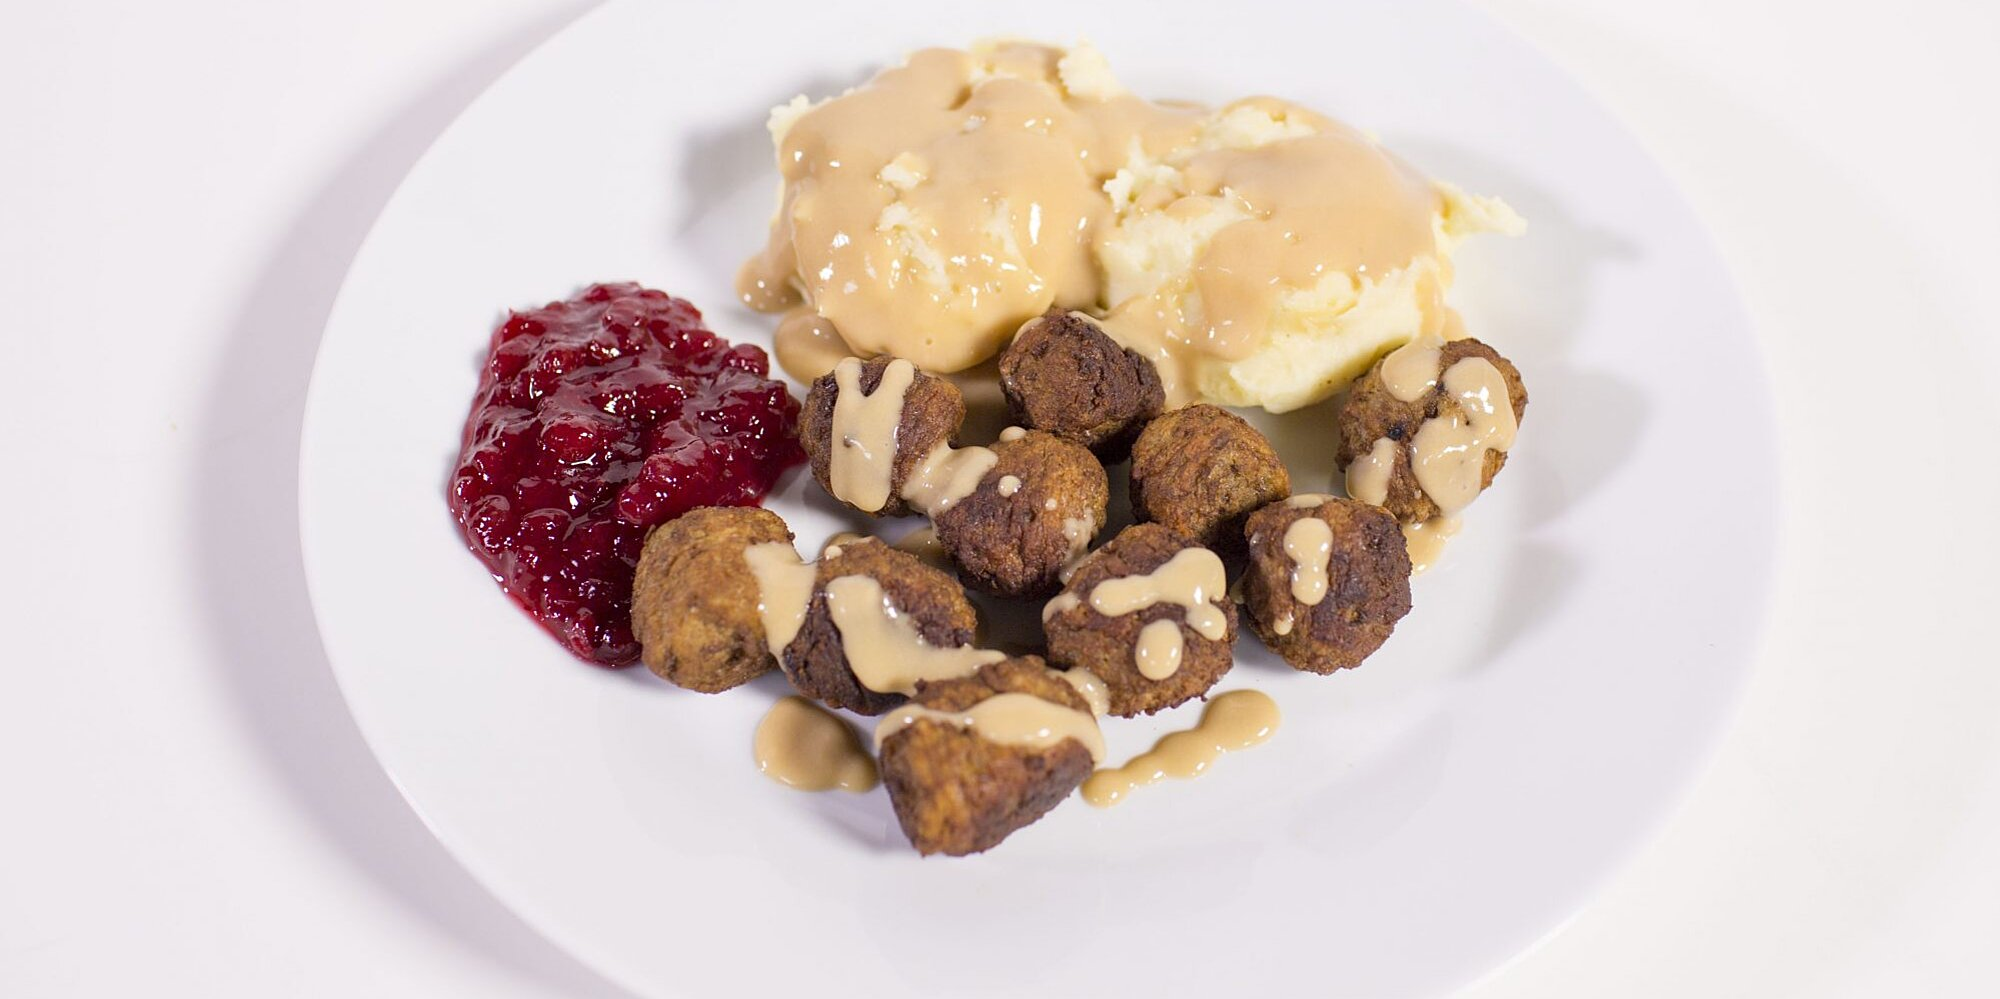 IKEA Shares Recipe for Its Famous Swedish Meatballs